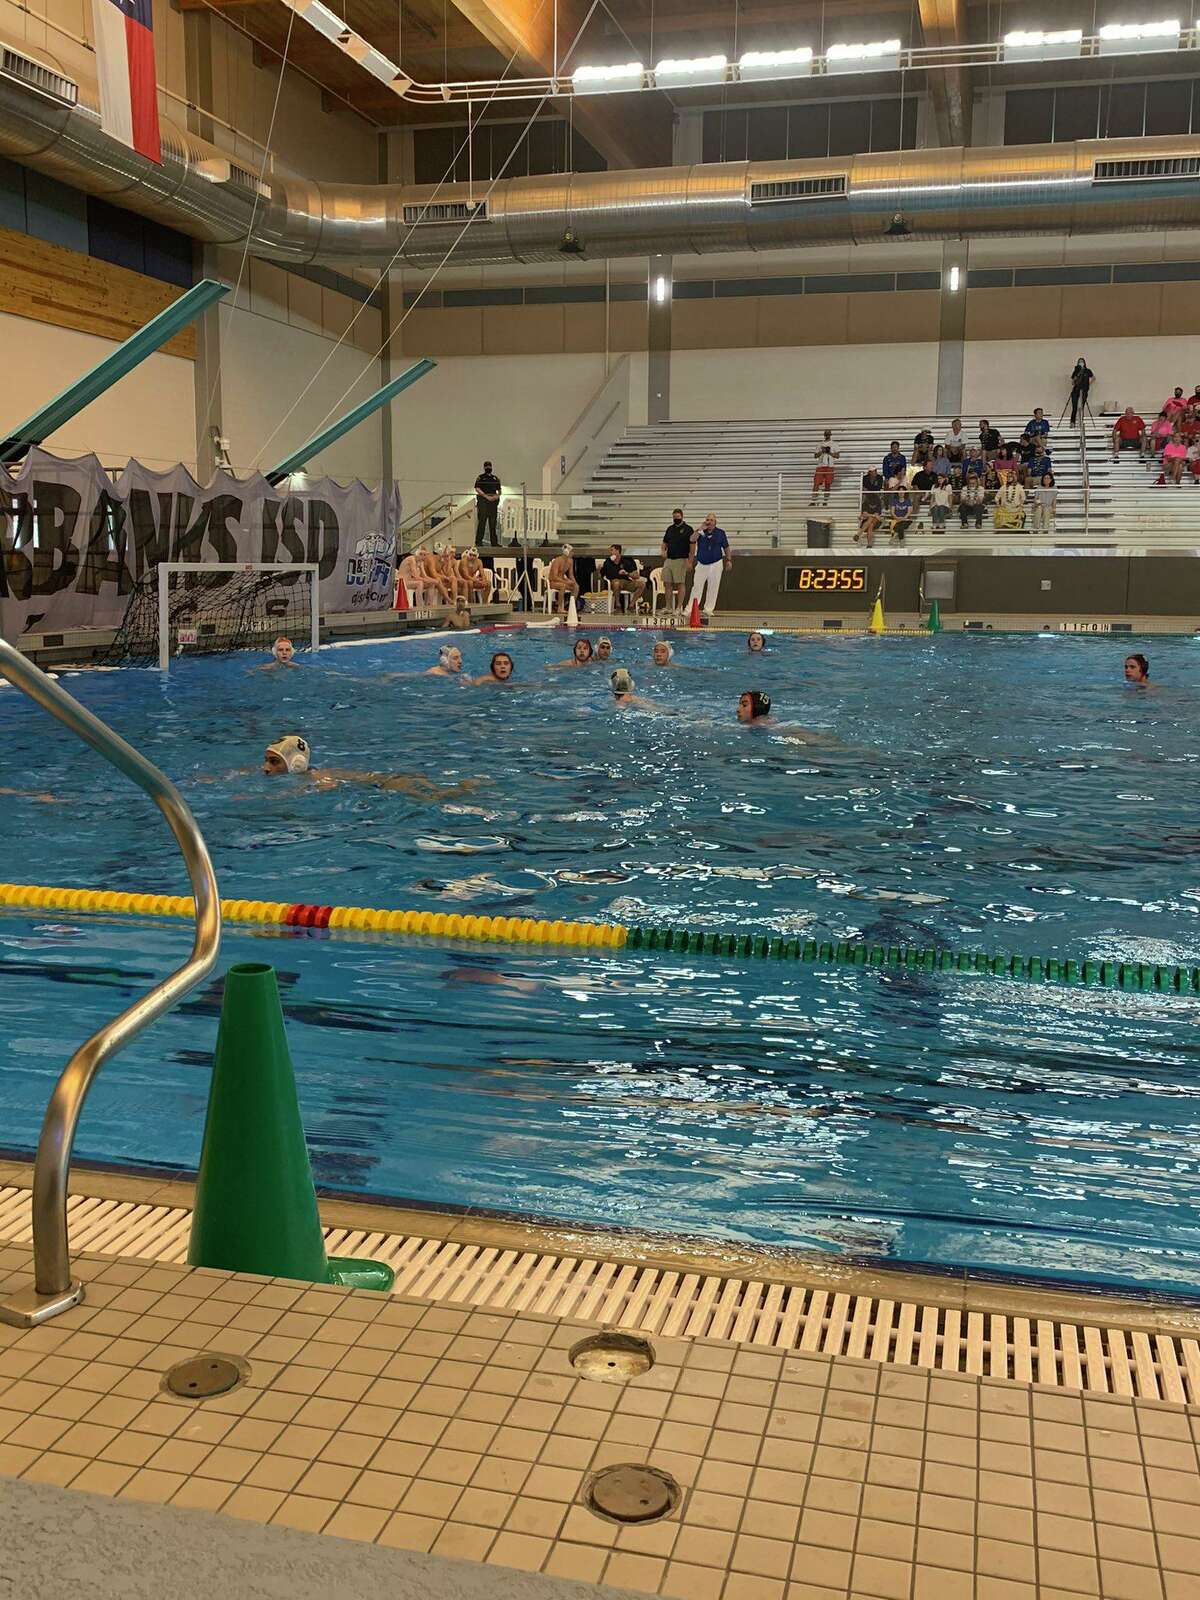 The Cy-Fair ISD Natatorium hosted the 2021 TISCA boys state water polo championships May 14-15.